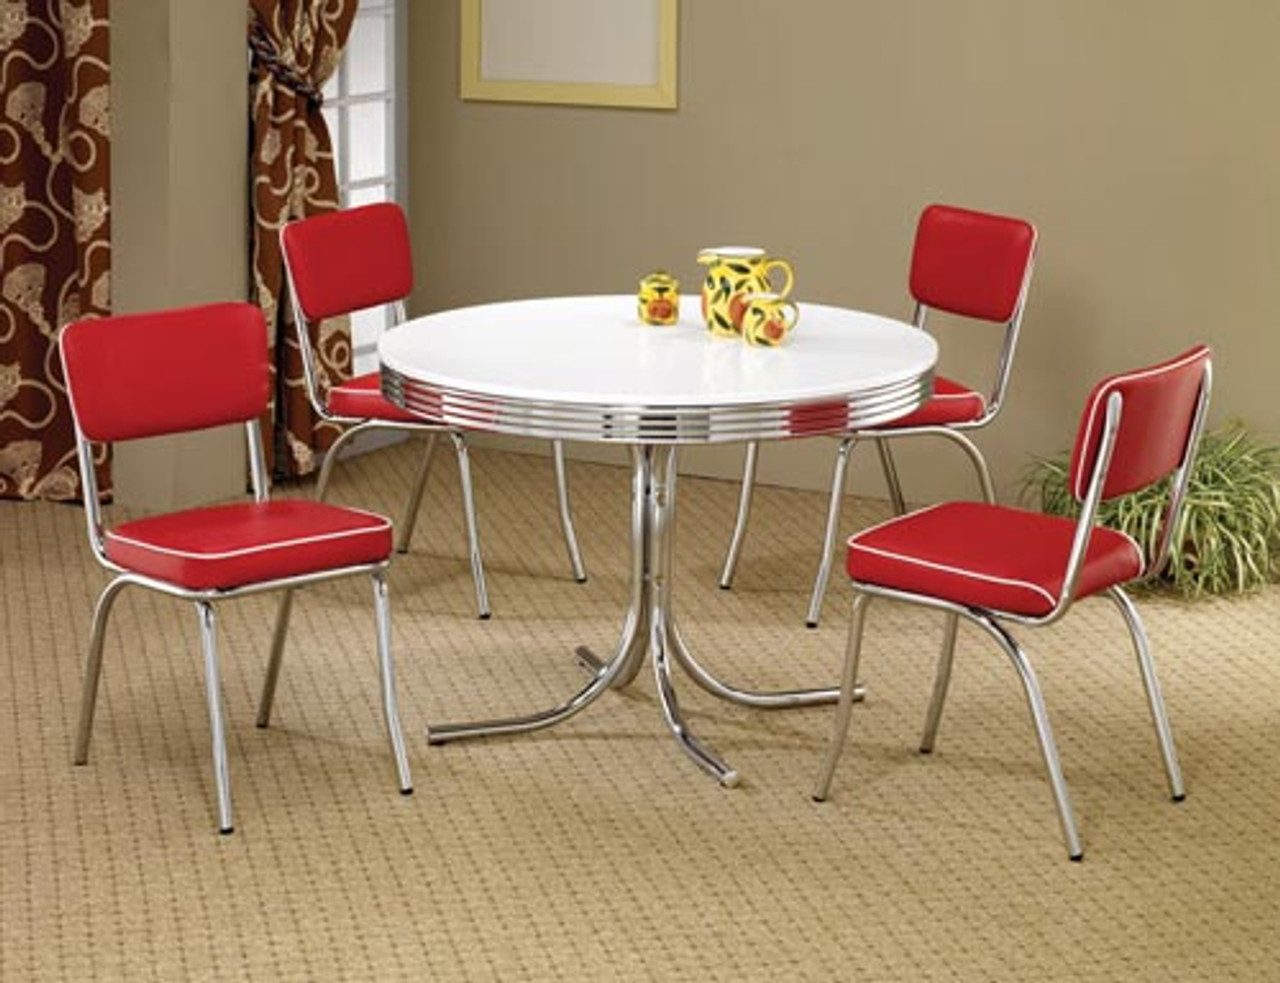 50's Style Round Retro Table w/ Four Red Chairs